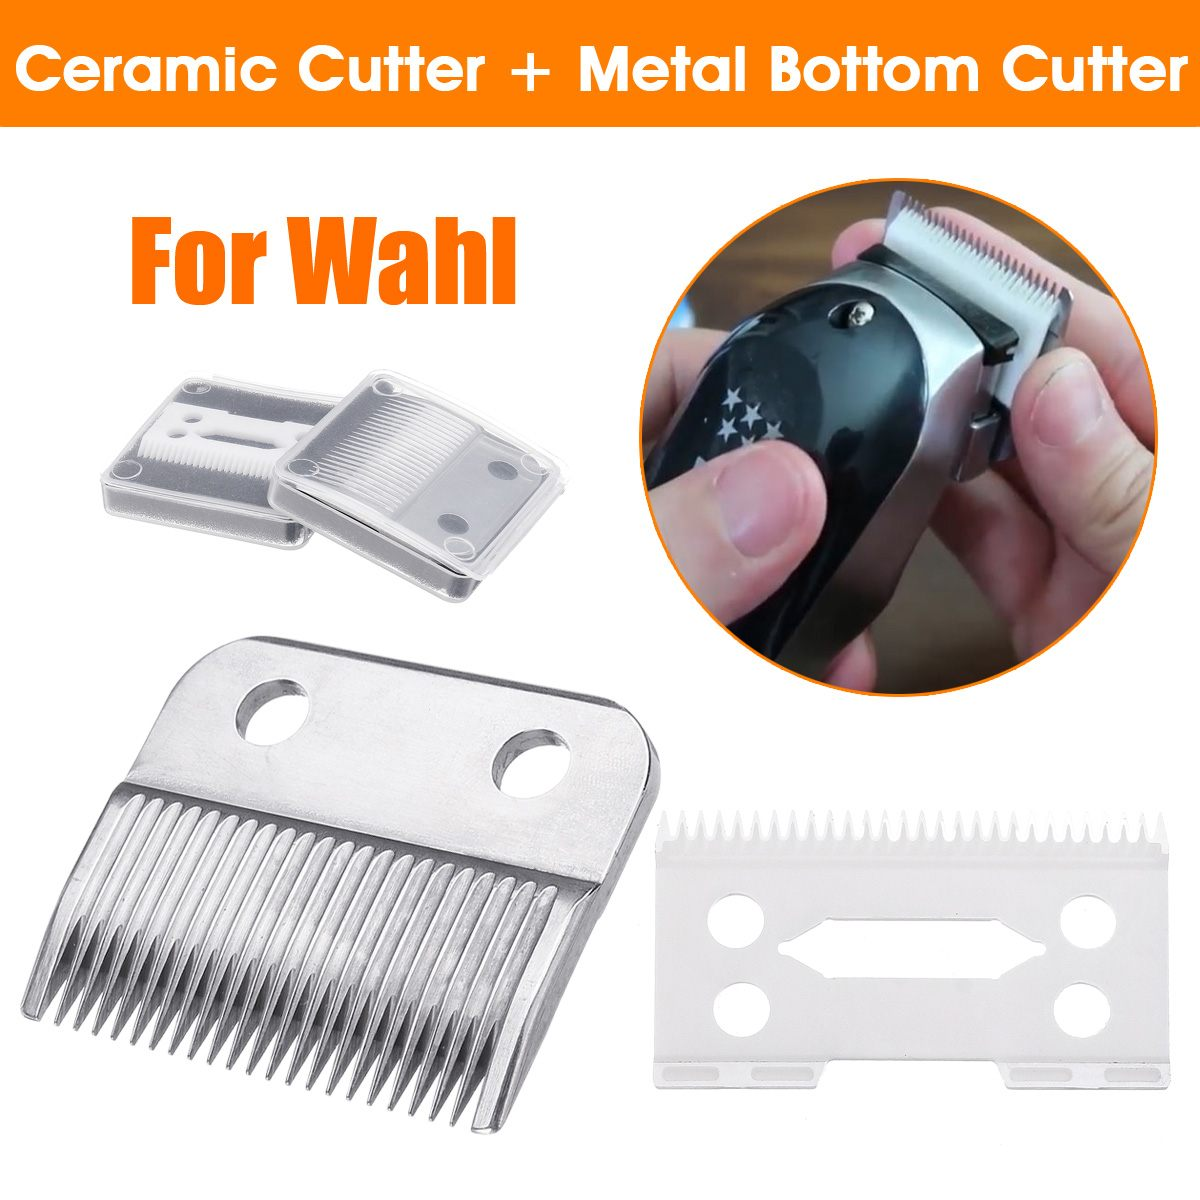 2Pcs Hair Beard Ceramic Blade Cutter + Metal Bottom Cutter Electric Shear Replacement For Wahl Electric Shear Clipper Set Silver